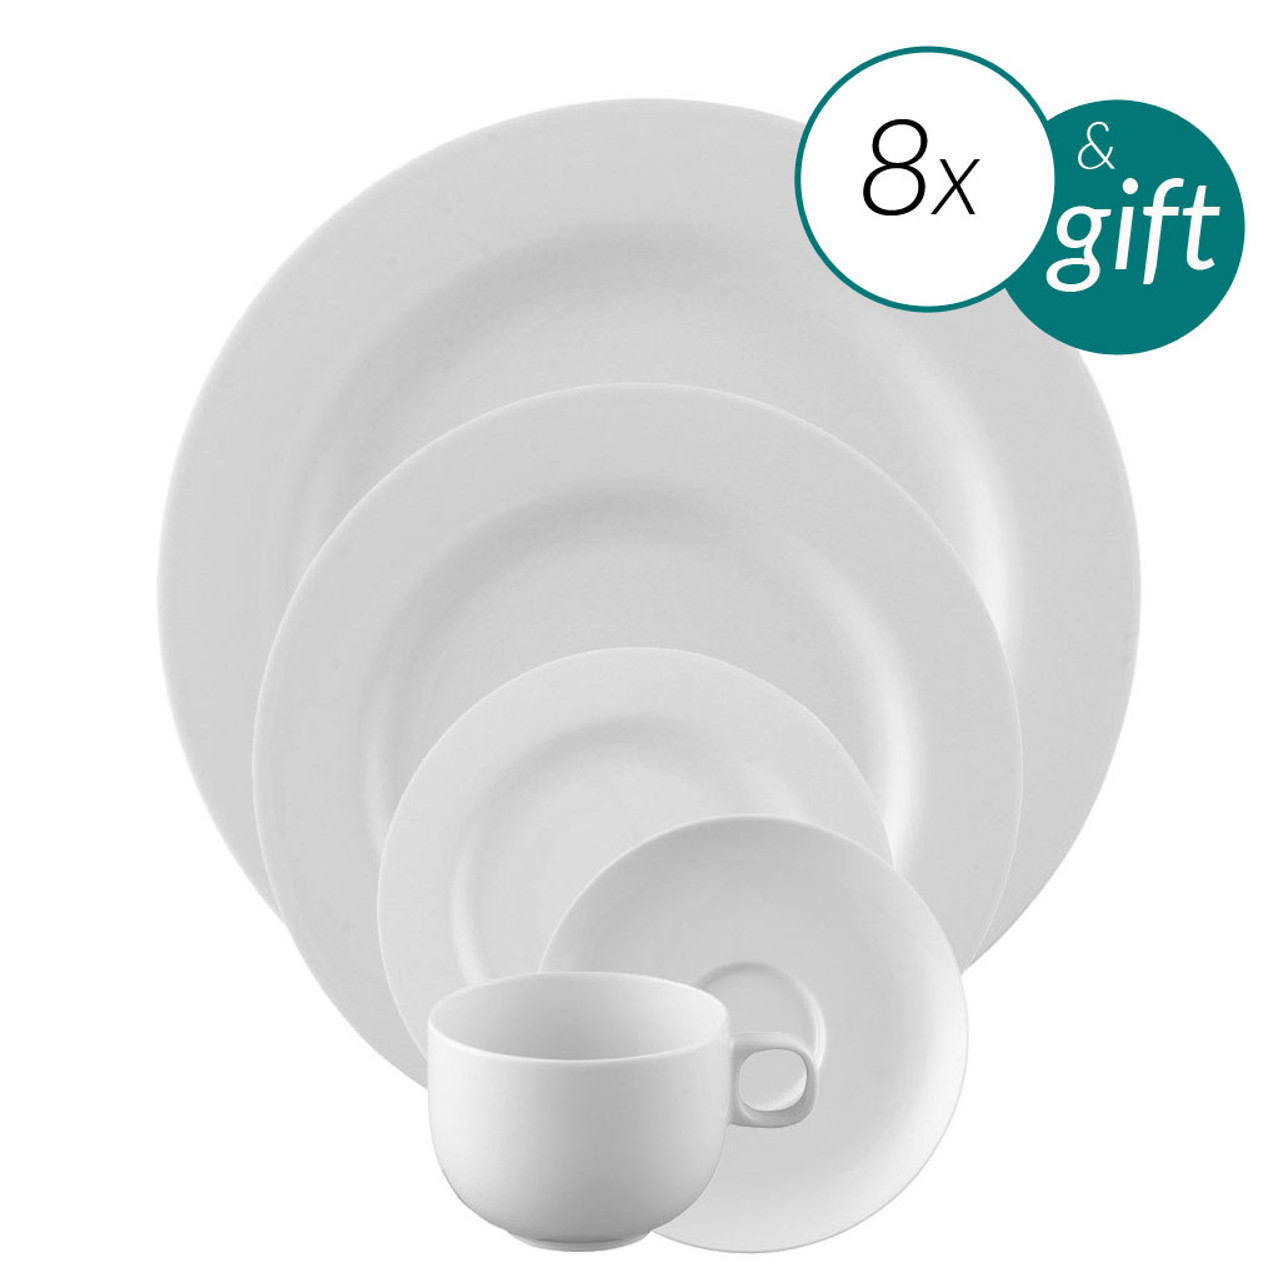 40 Piece Dinnerware set with free serving bowl | Moon White  sc 1 st  Rosenthal & 40 Piece Dinnerware set with free serving bowl | Moon White ...